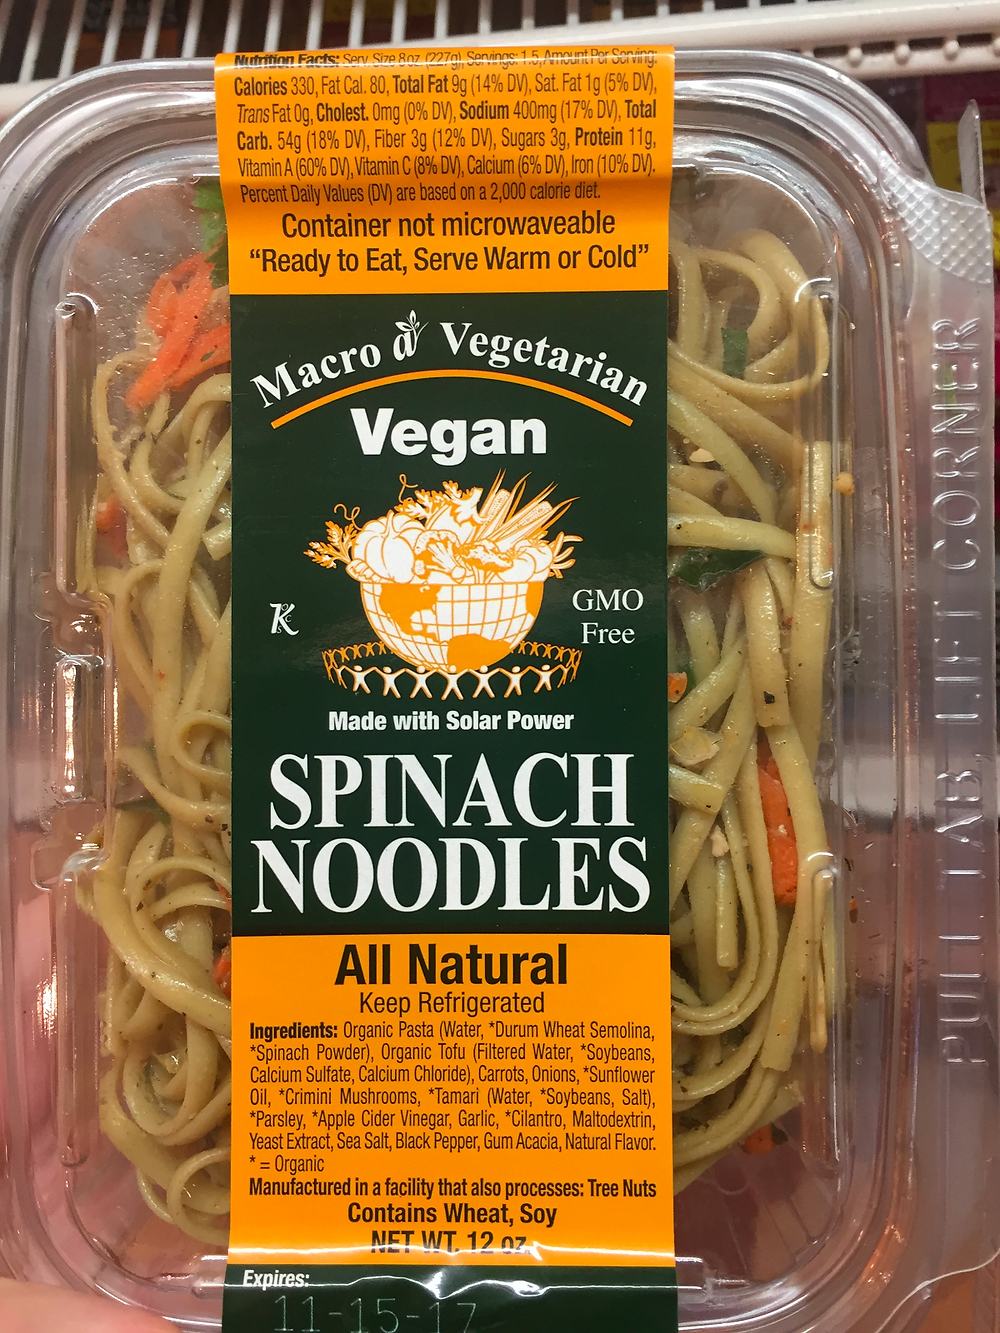 Spinach noodles from Outtakes